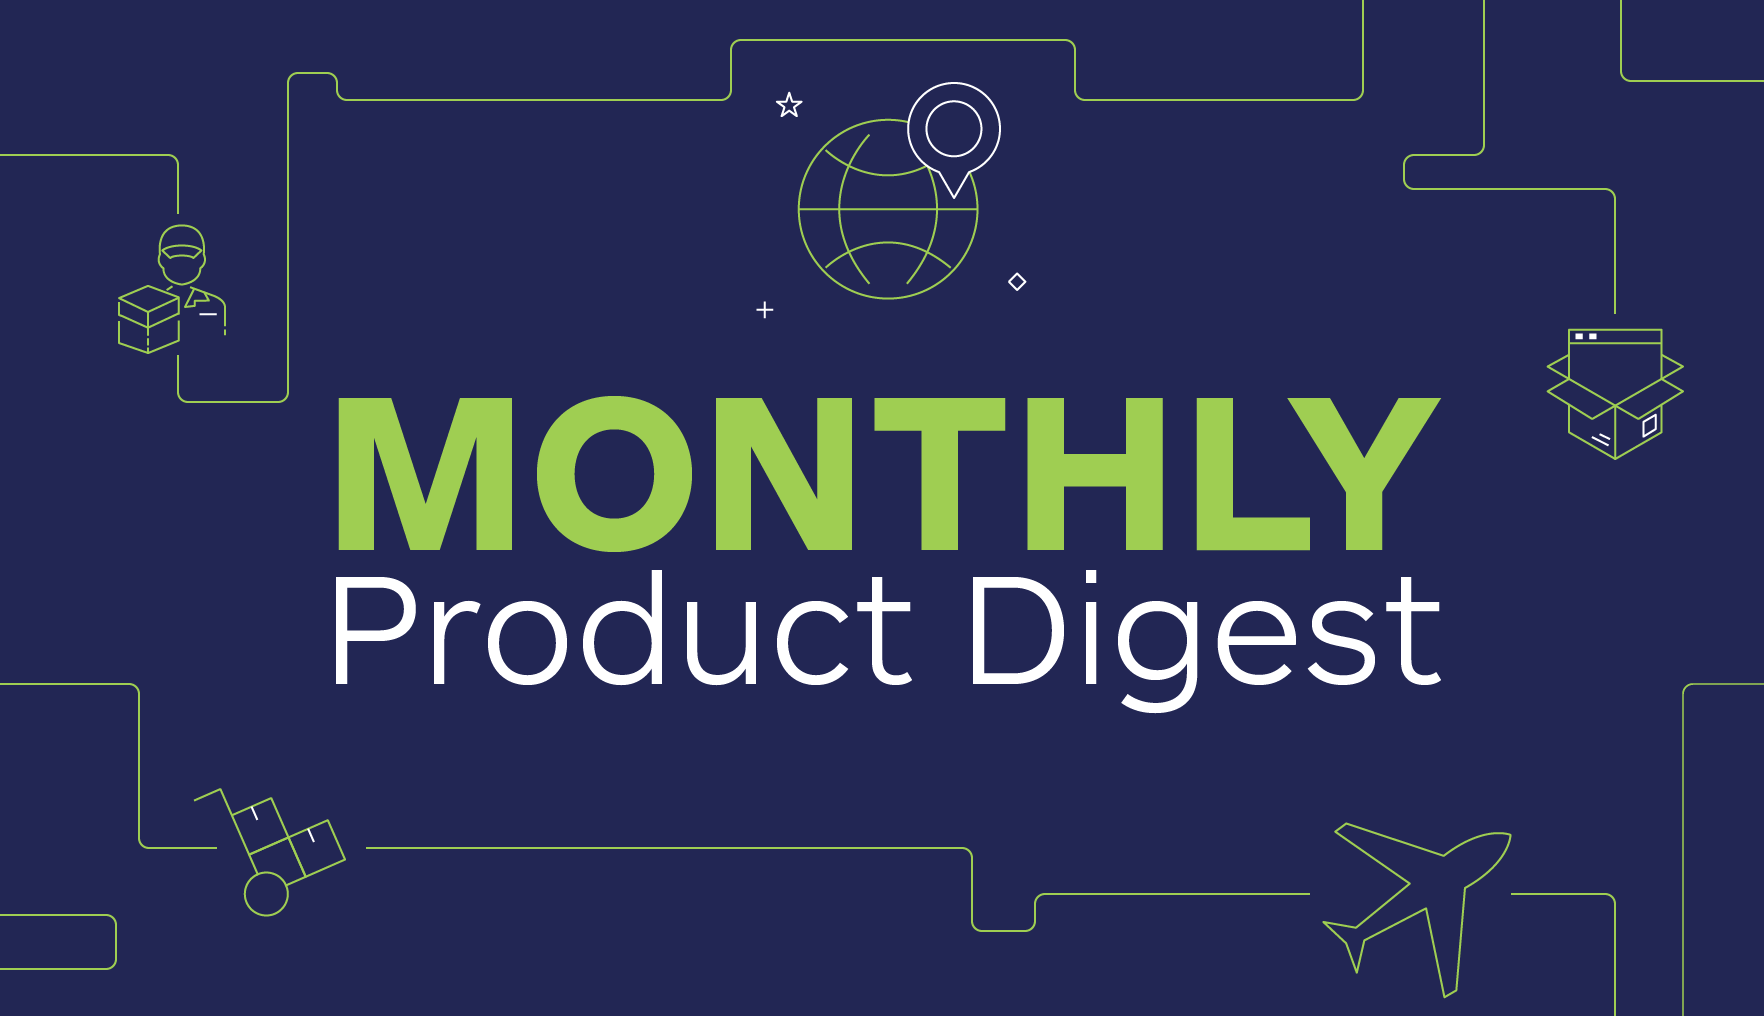 Monthly Product Digest